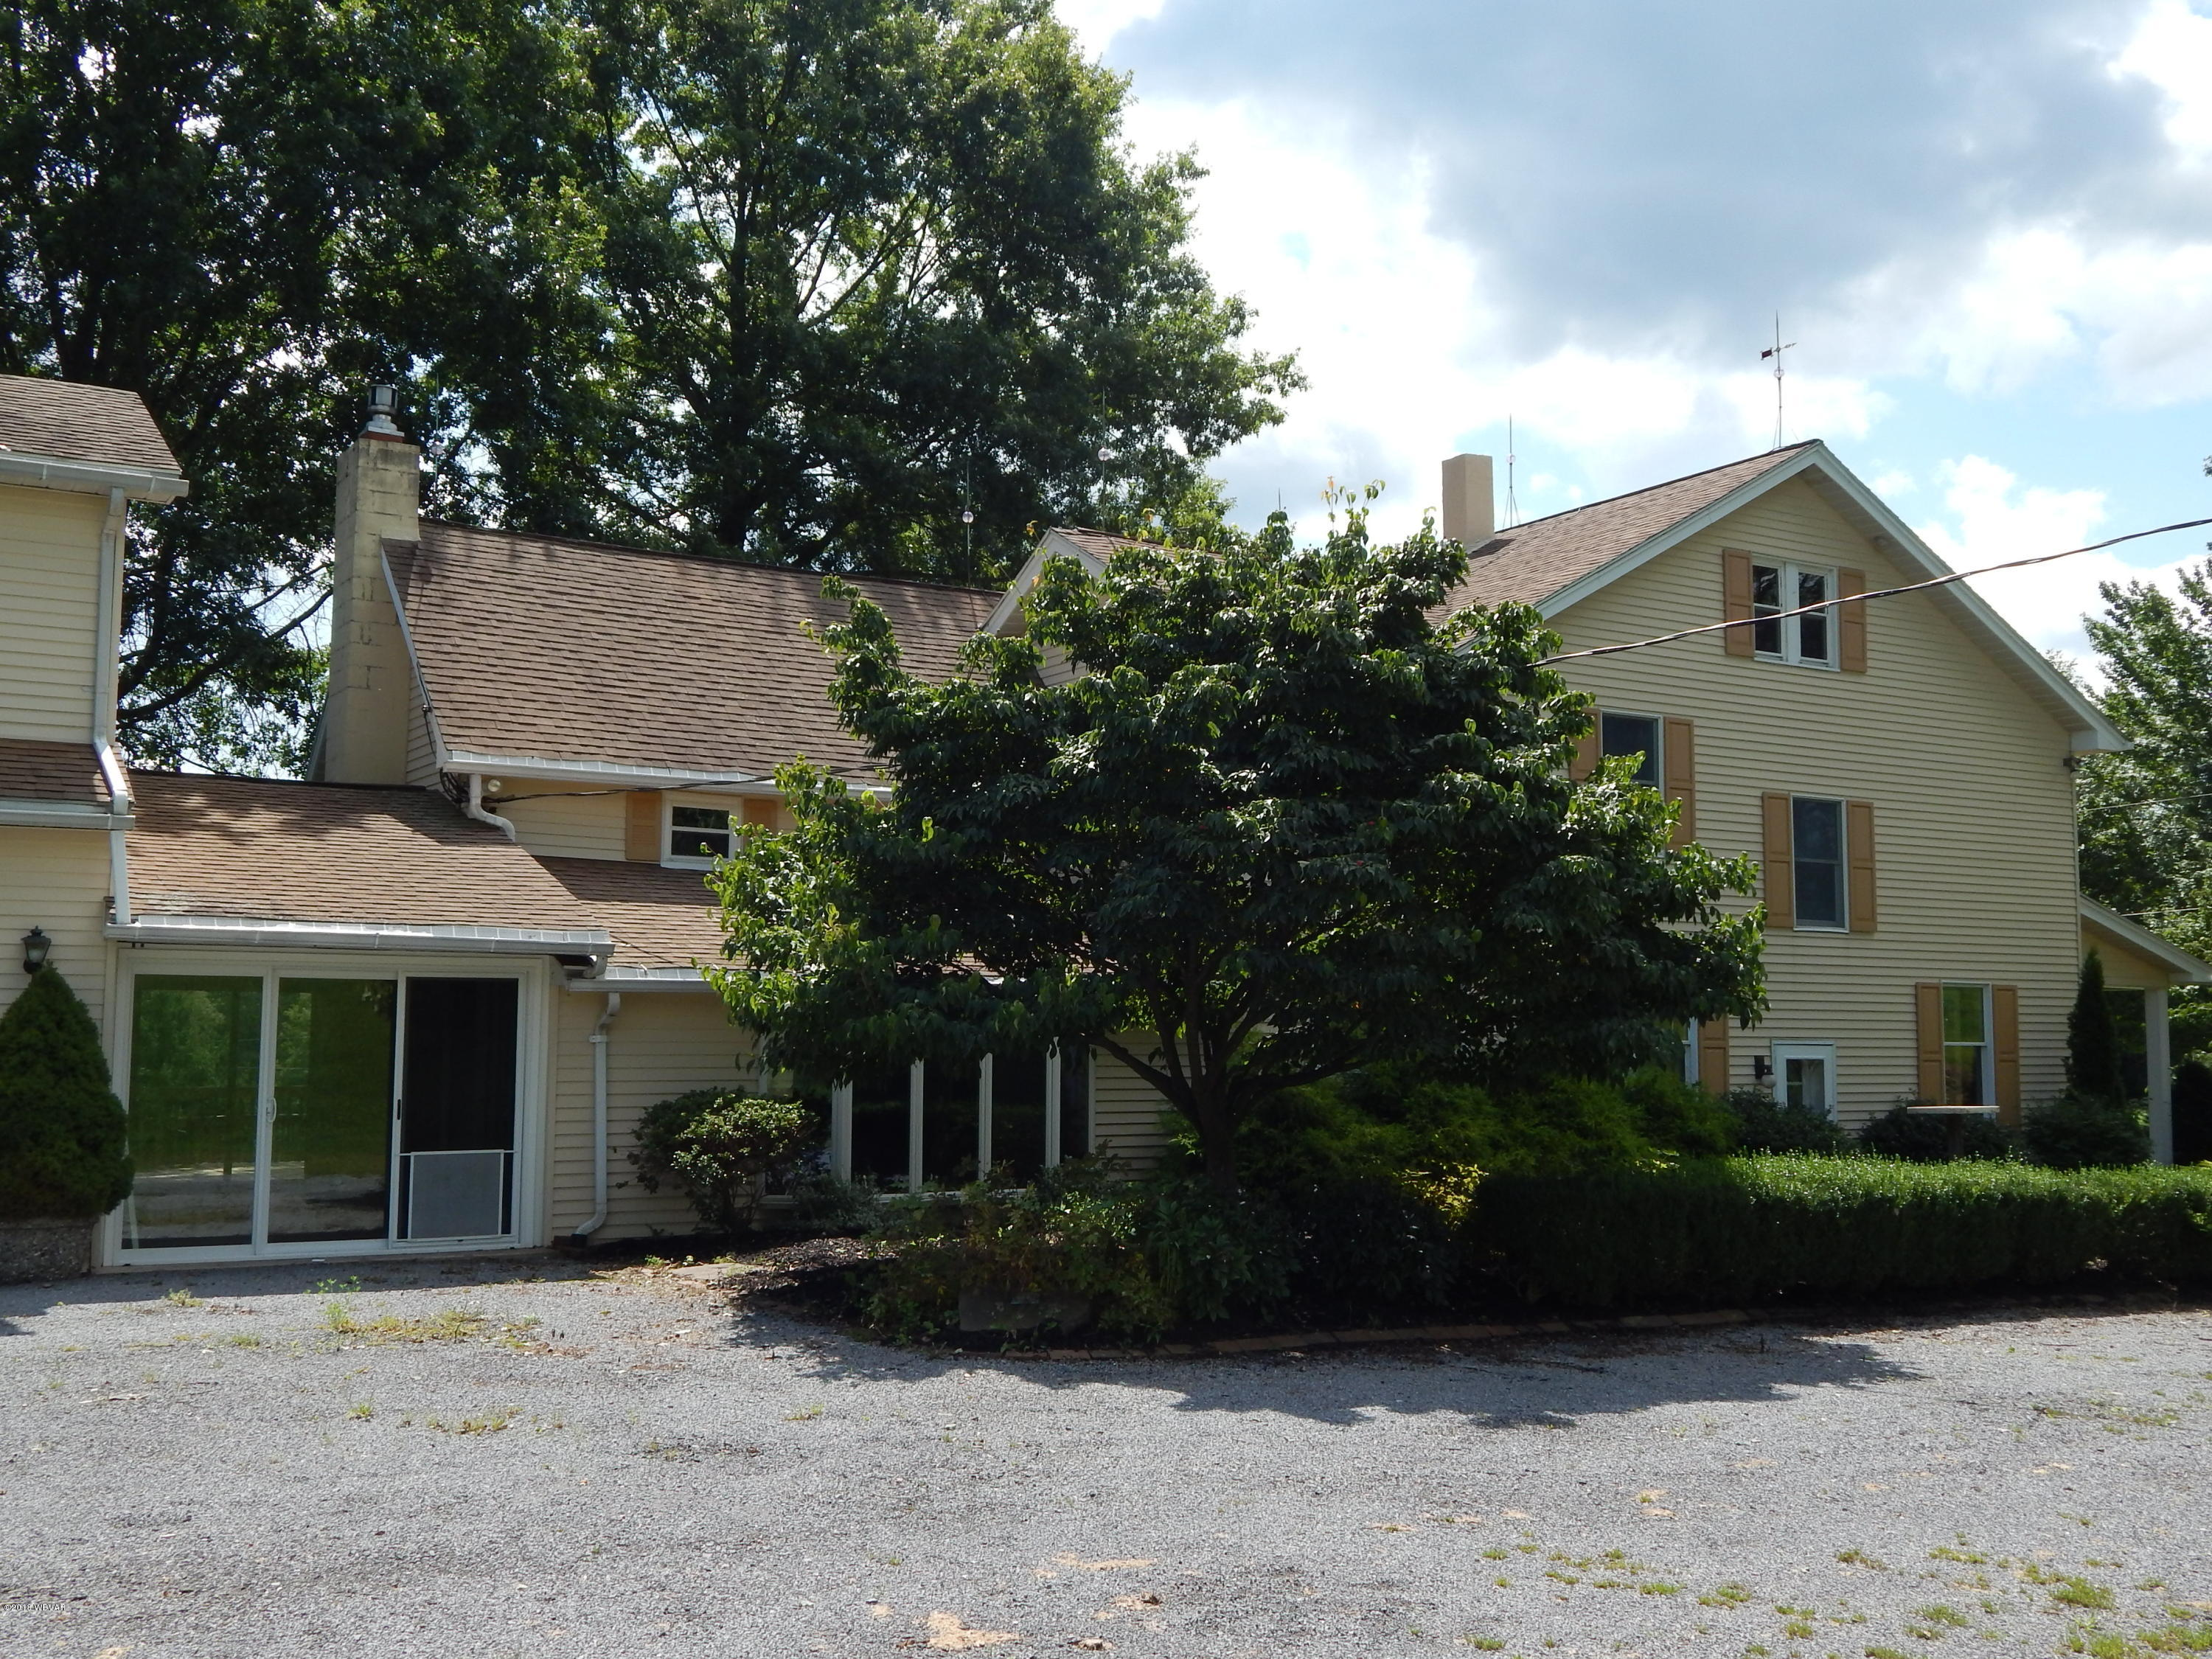 494 LAZY SPRING ROAD,Linden,PA 17744,4 Bedrooms Bedrooms,2 BathroomsBathrooms,Residential,LAZY SPRING,WB-86625